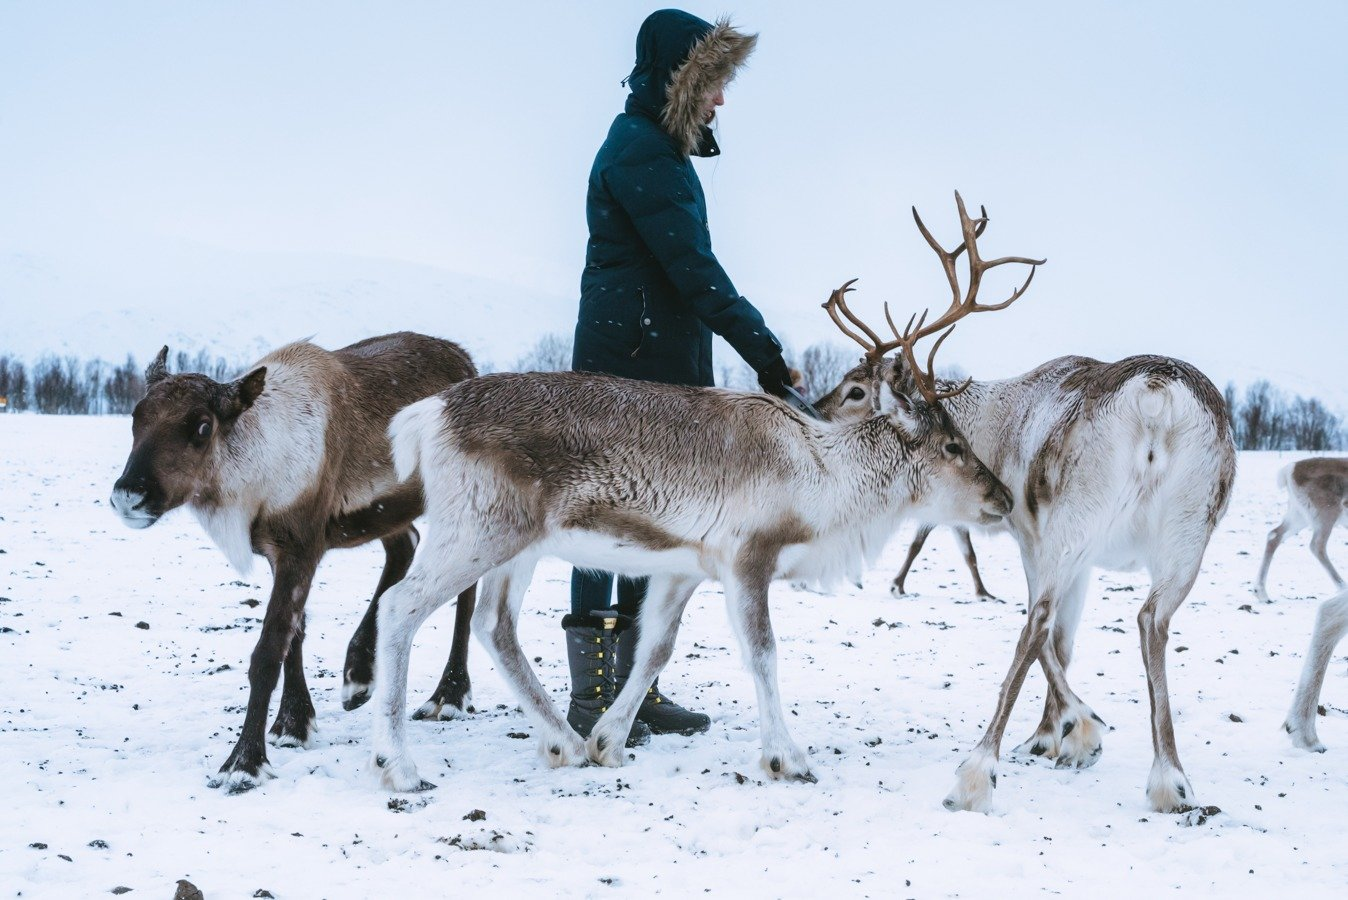 Feeding the reindeer at the Sami experience